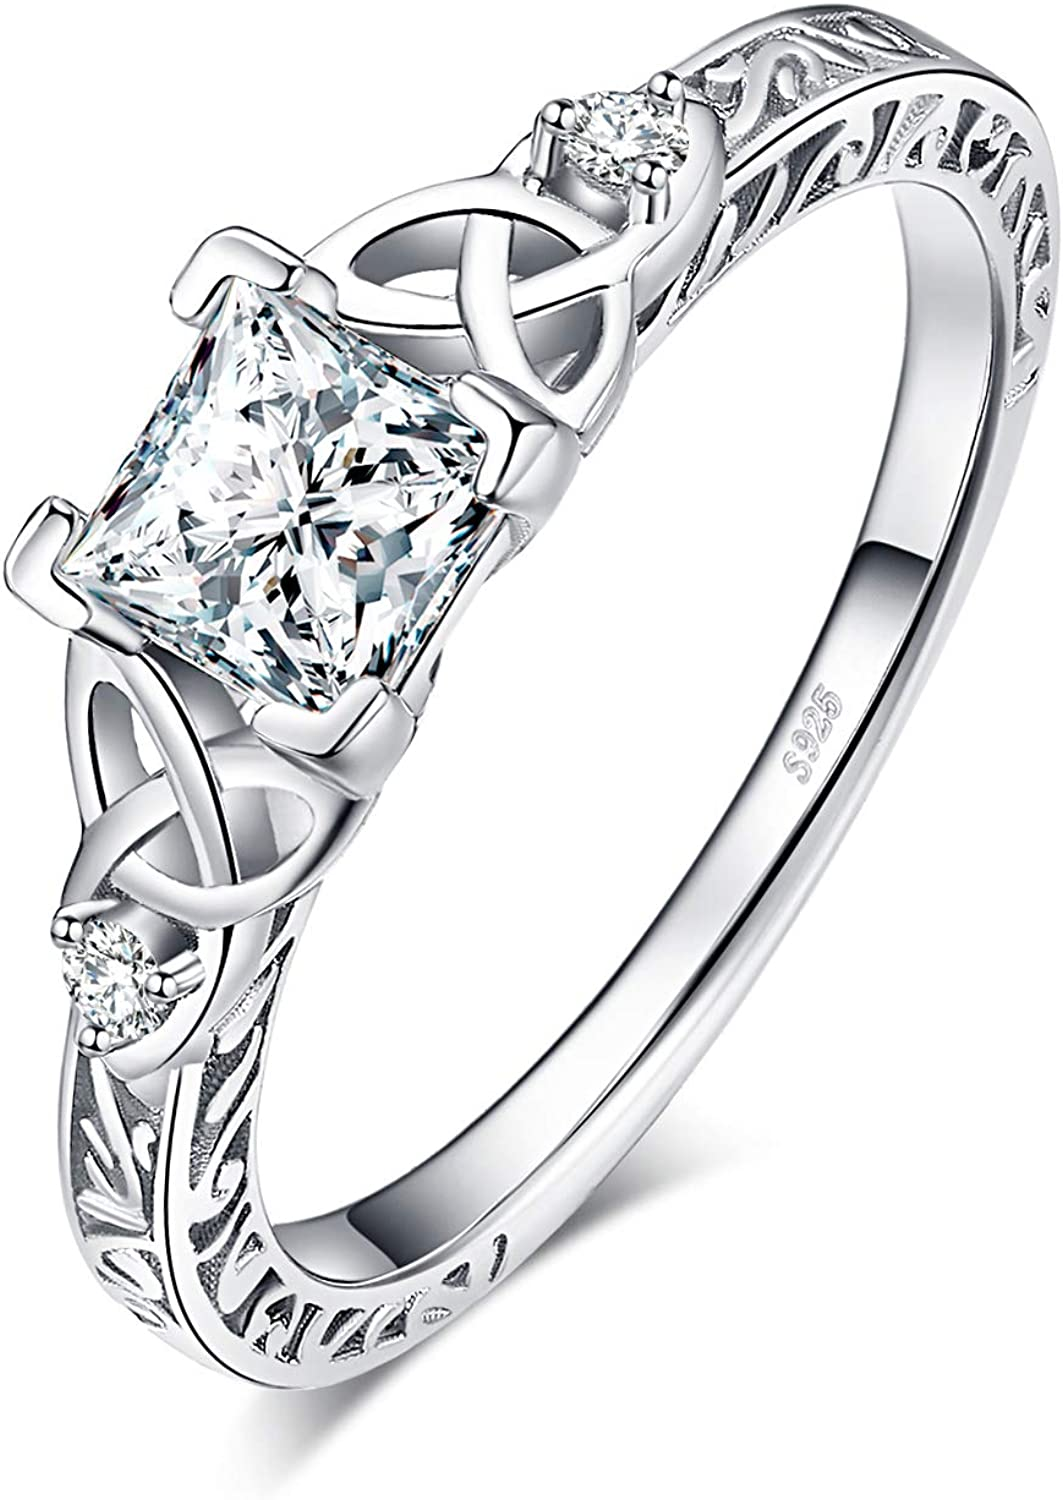 Girls Womens Jewellery Gifts Infinity Anniversary Simulated Diamond Ring Set Wedding Eternity Engagement Rings for her JewelryPalace White Gold Plated 925 Sterling Silver Promise Rings for Women